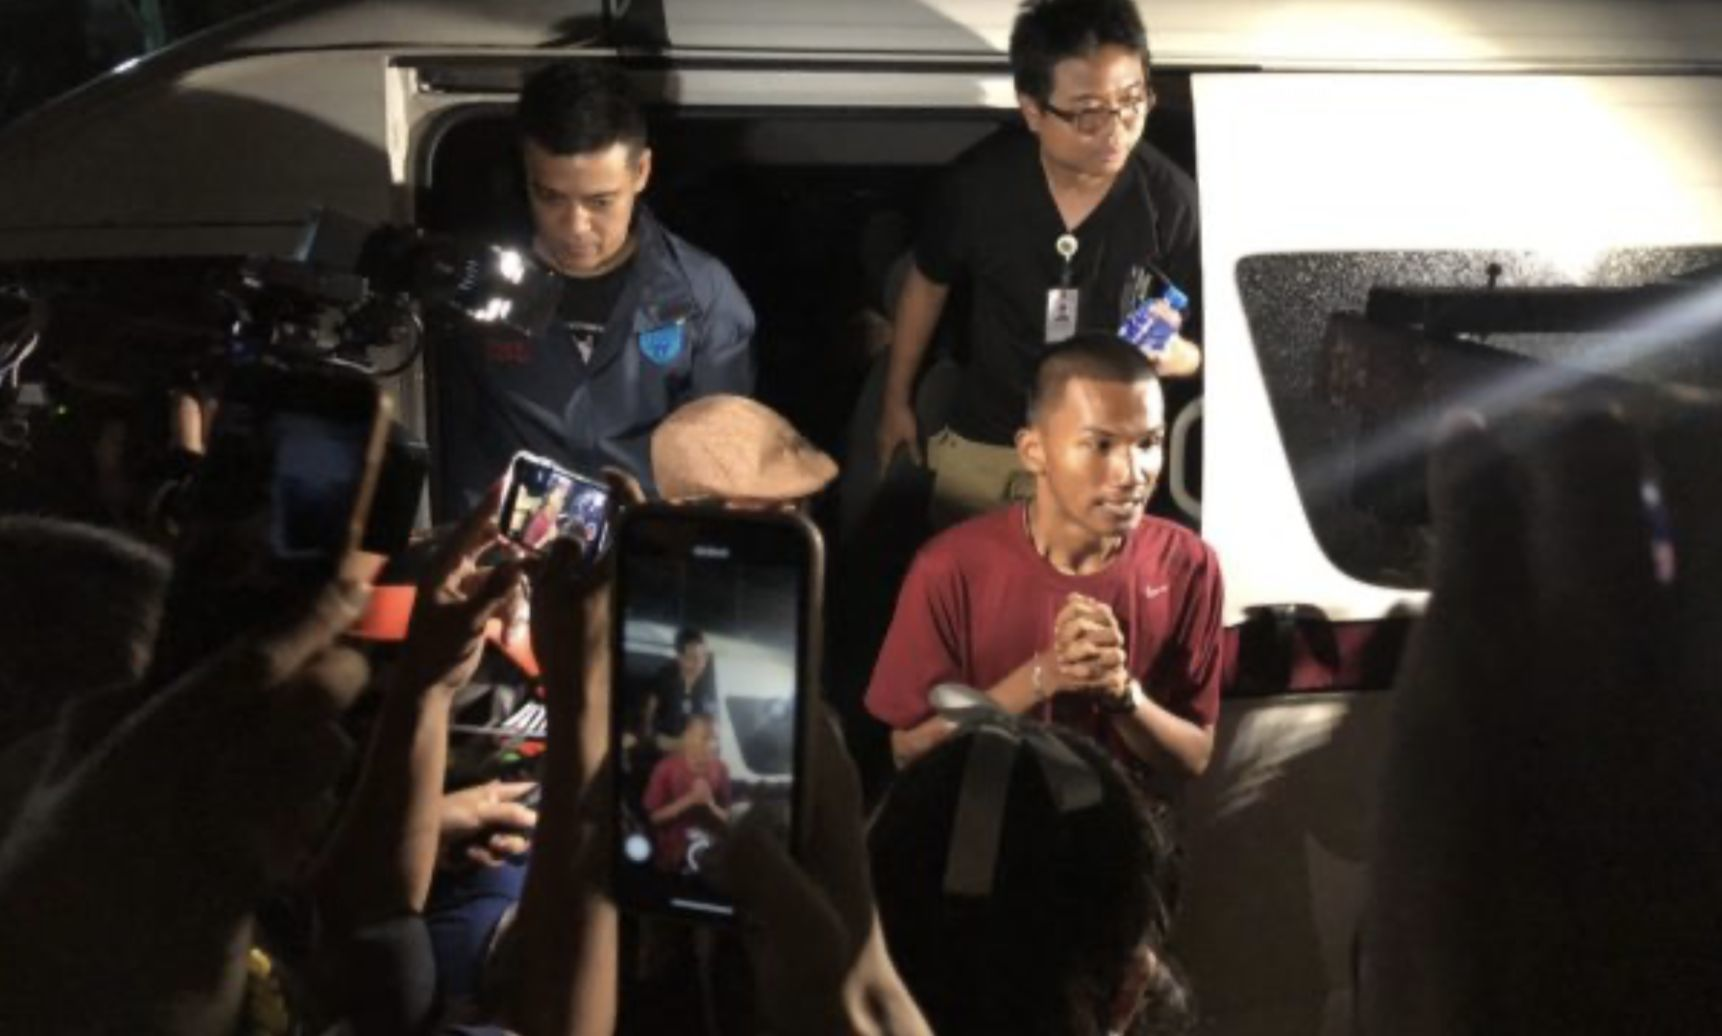 3 protesters denied bail as 10pm deadline for the PM's resignation looms